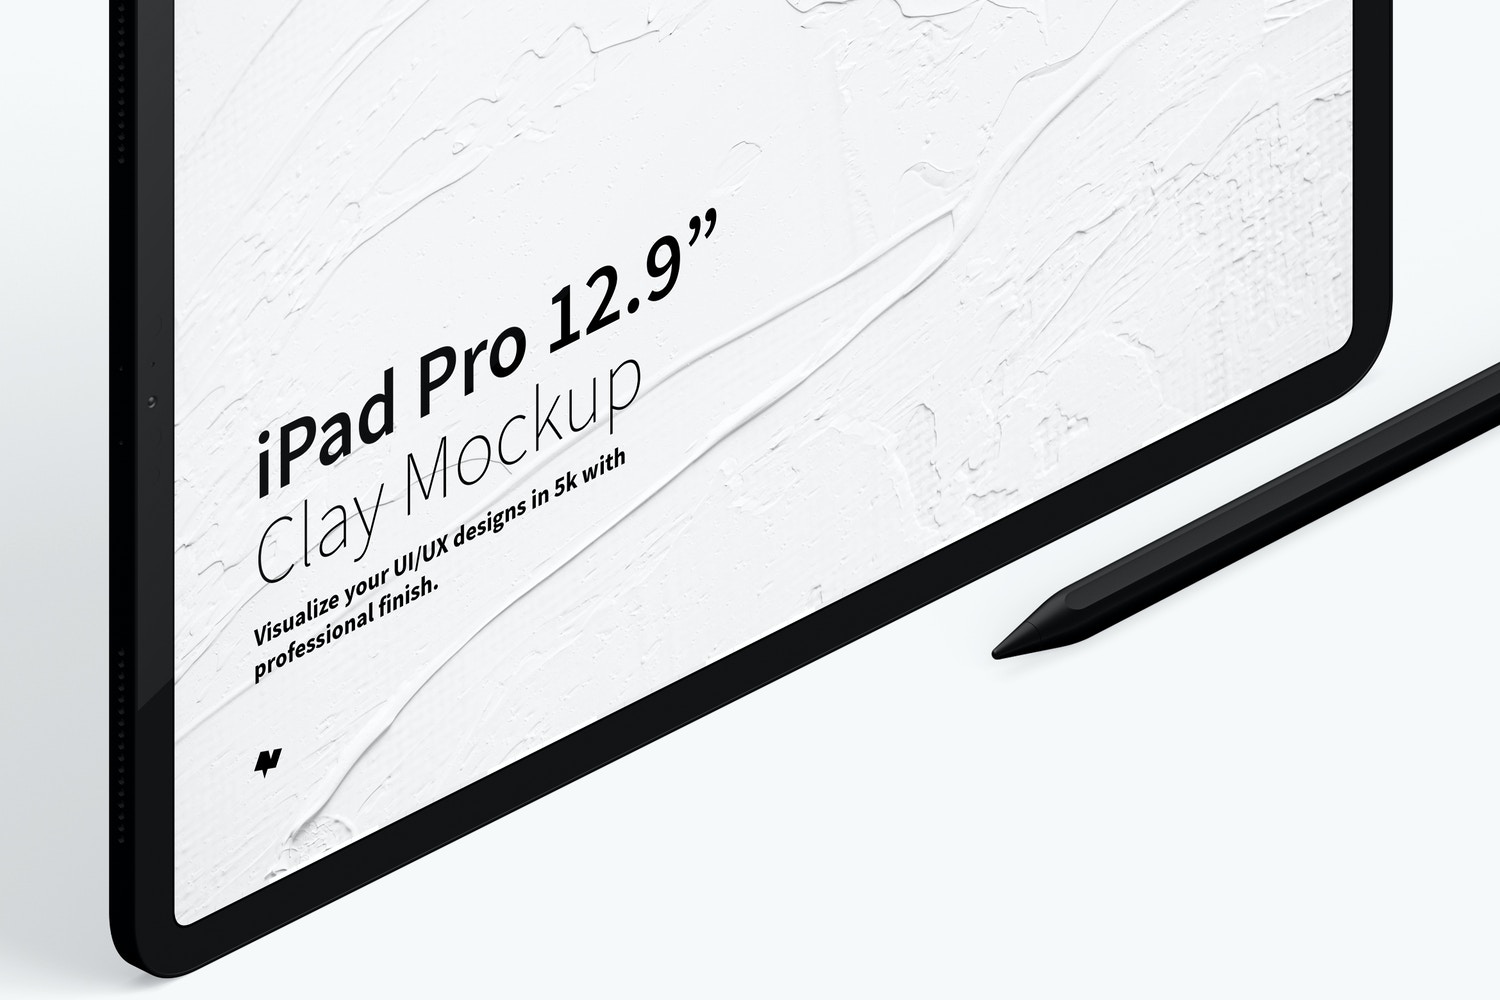 Clay iPad Pro 12.9 Mockup, Isometric Right View 03 (3) by Original Mockups on Original Mockups